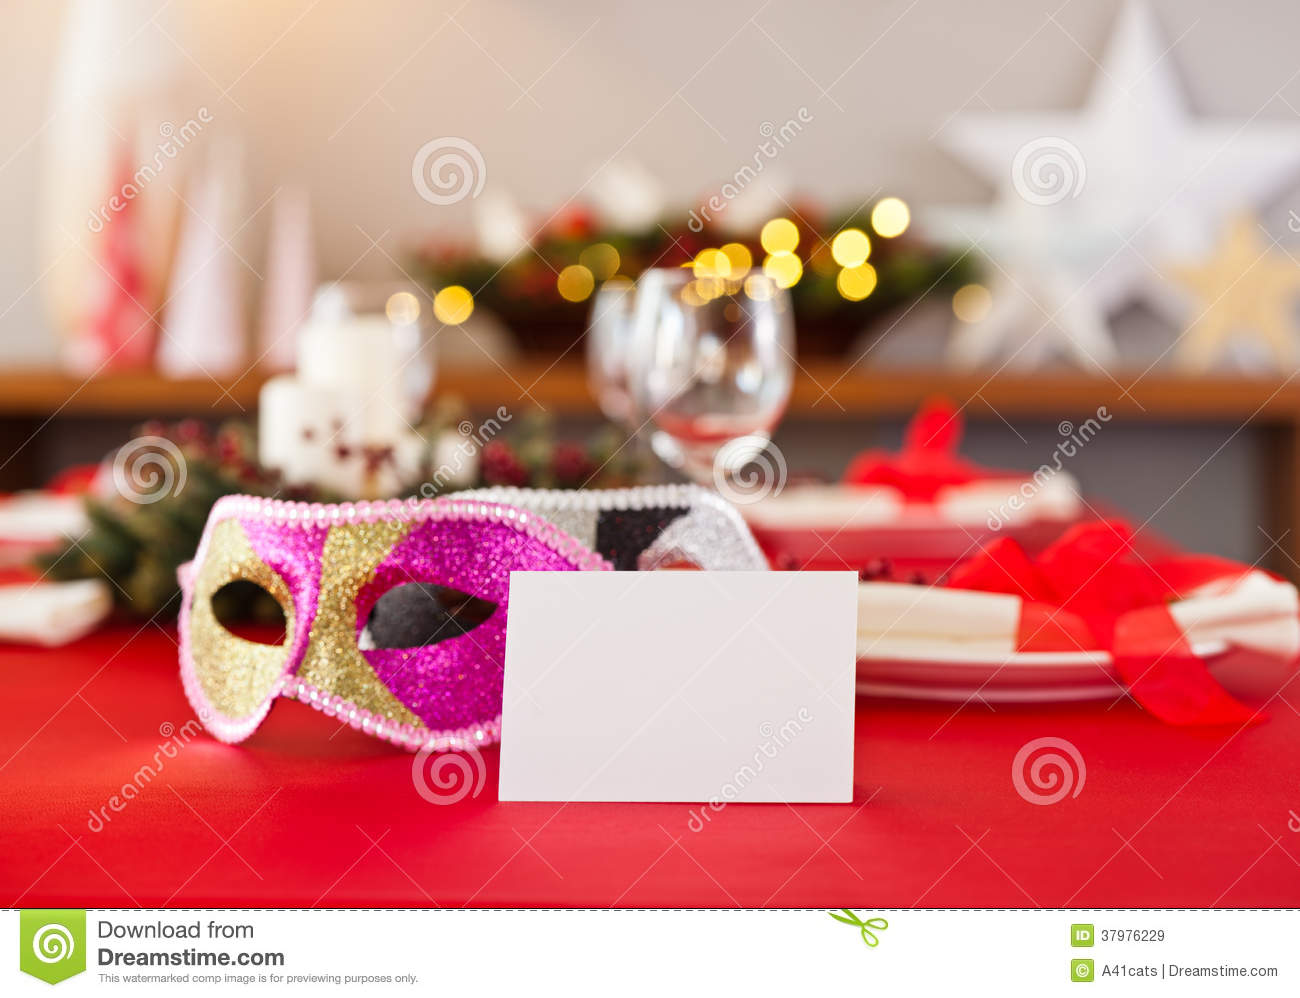 New years dinner table setting royalty free stock images - New year dinner table setting ...